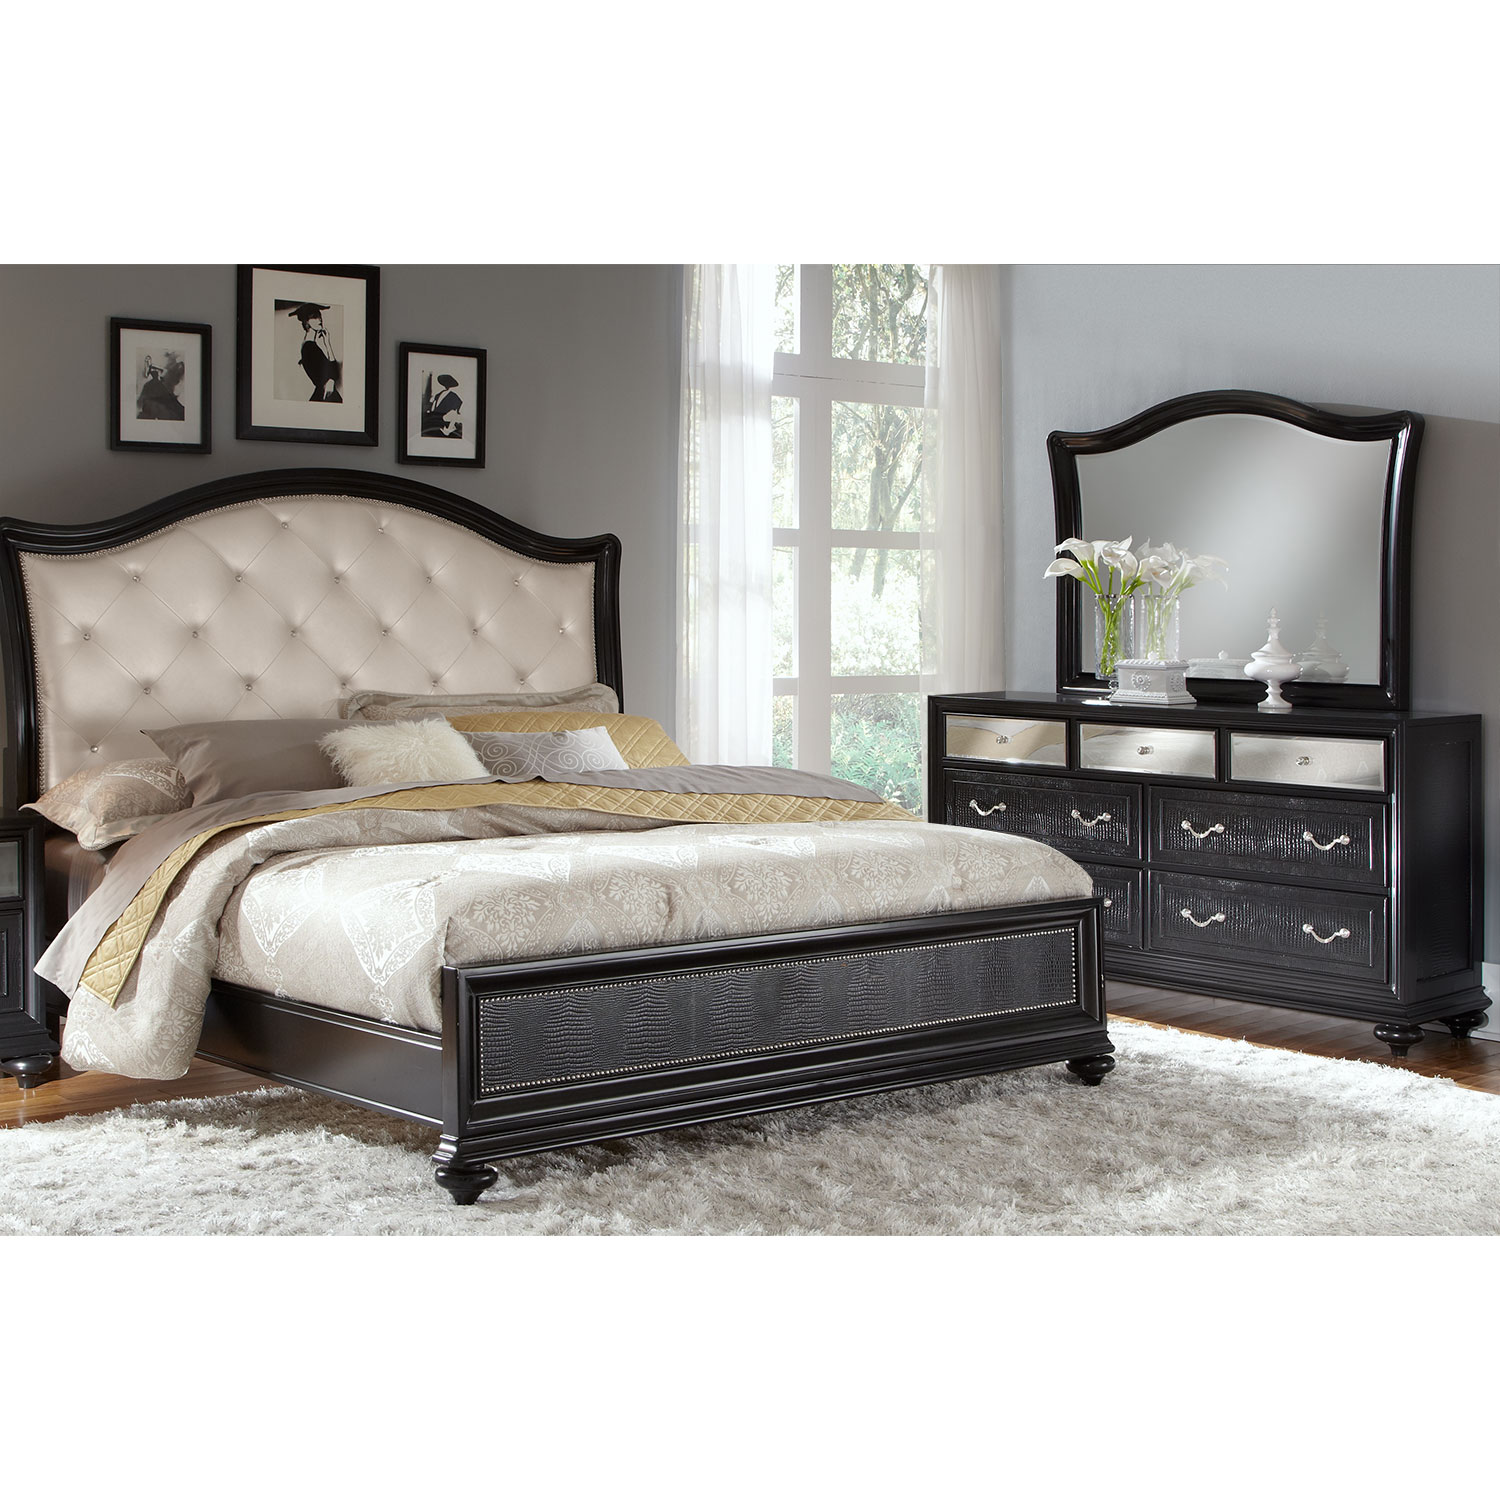 Pulaski Bedroom Furniture Marilyn 5 Piece King Bedroom Set Ebony American Signature